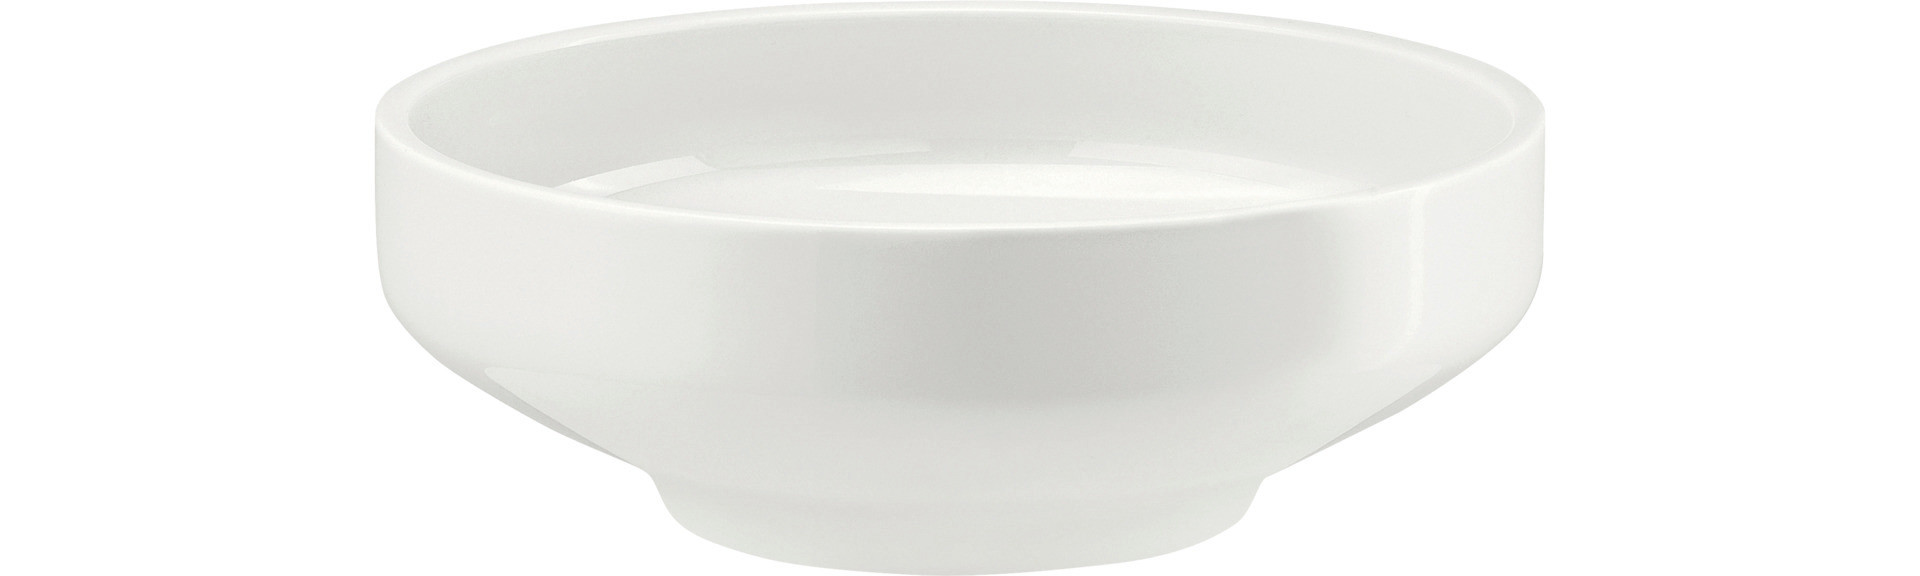 Shiro, Bowl ø 220 mm / 1,48 l